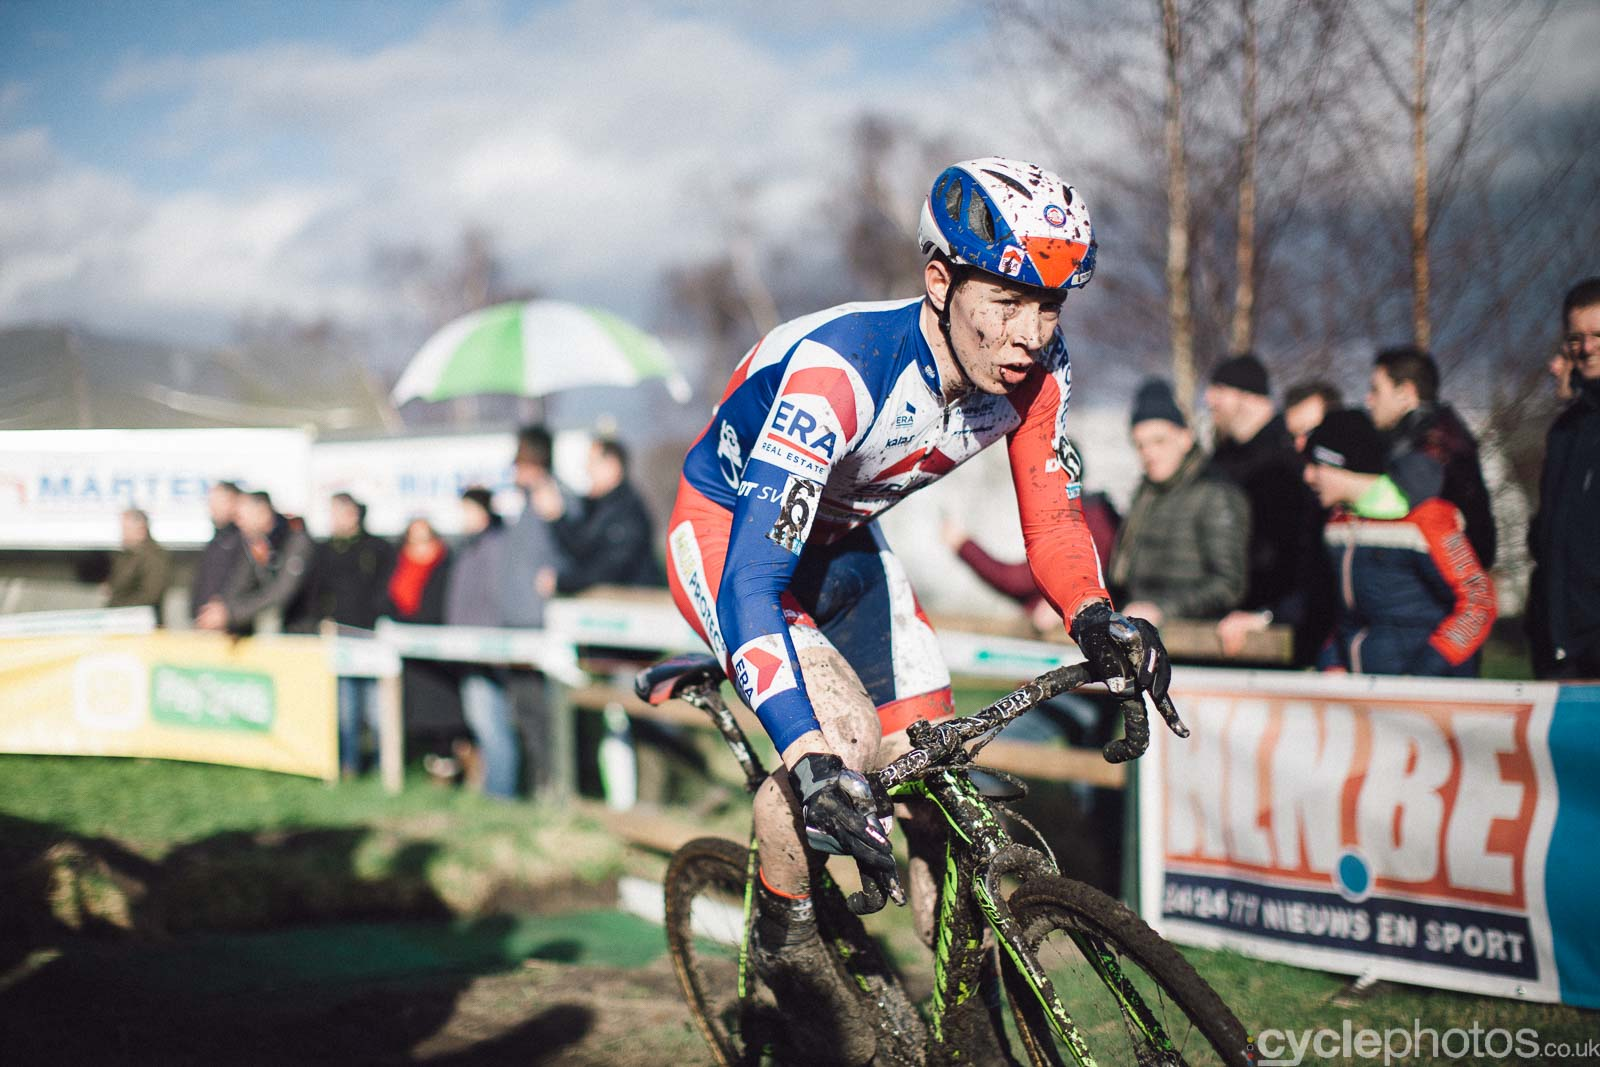 2016-cyclephotos-cyclocross-hoogstraten-151707-laurens-sweeck